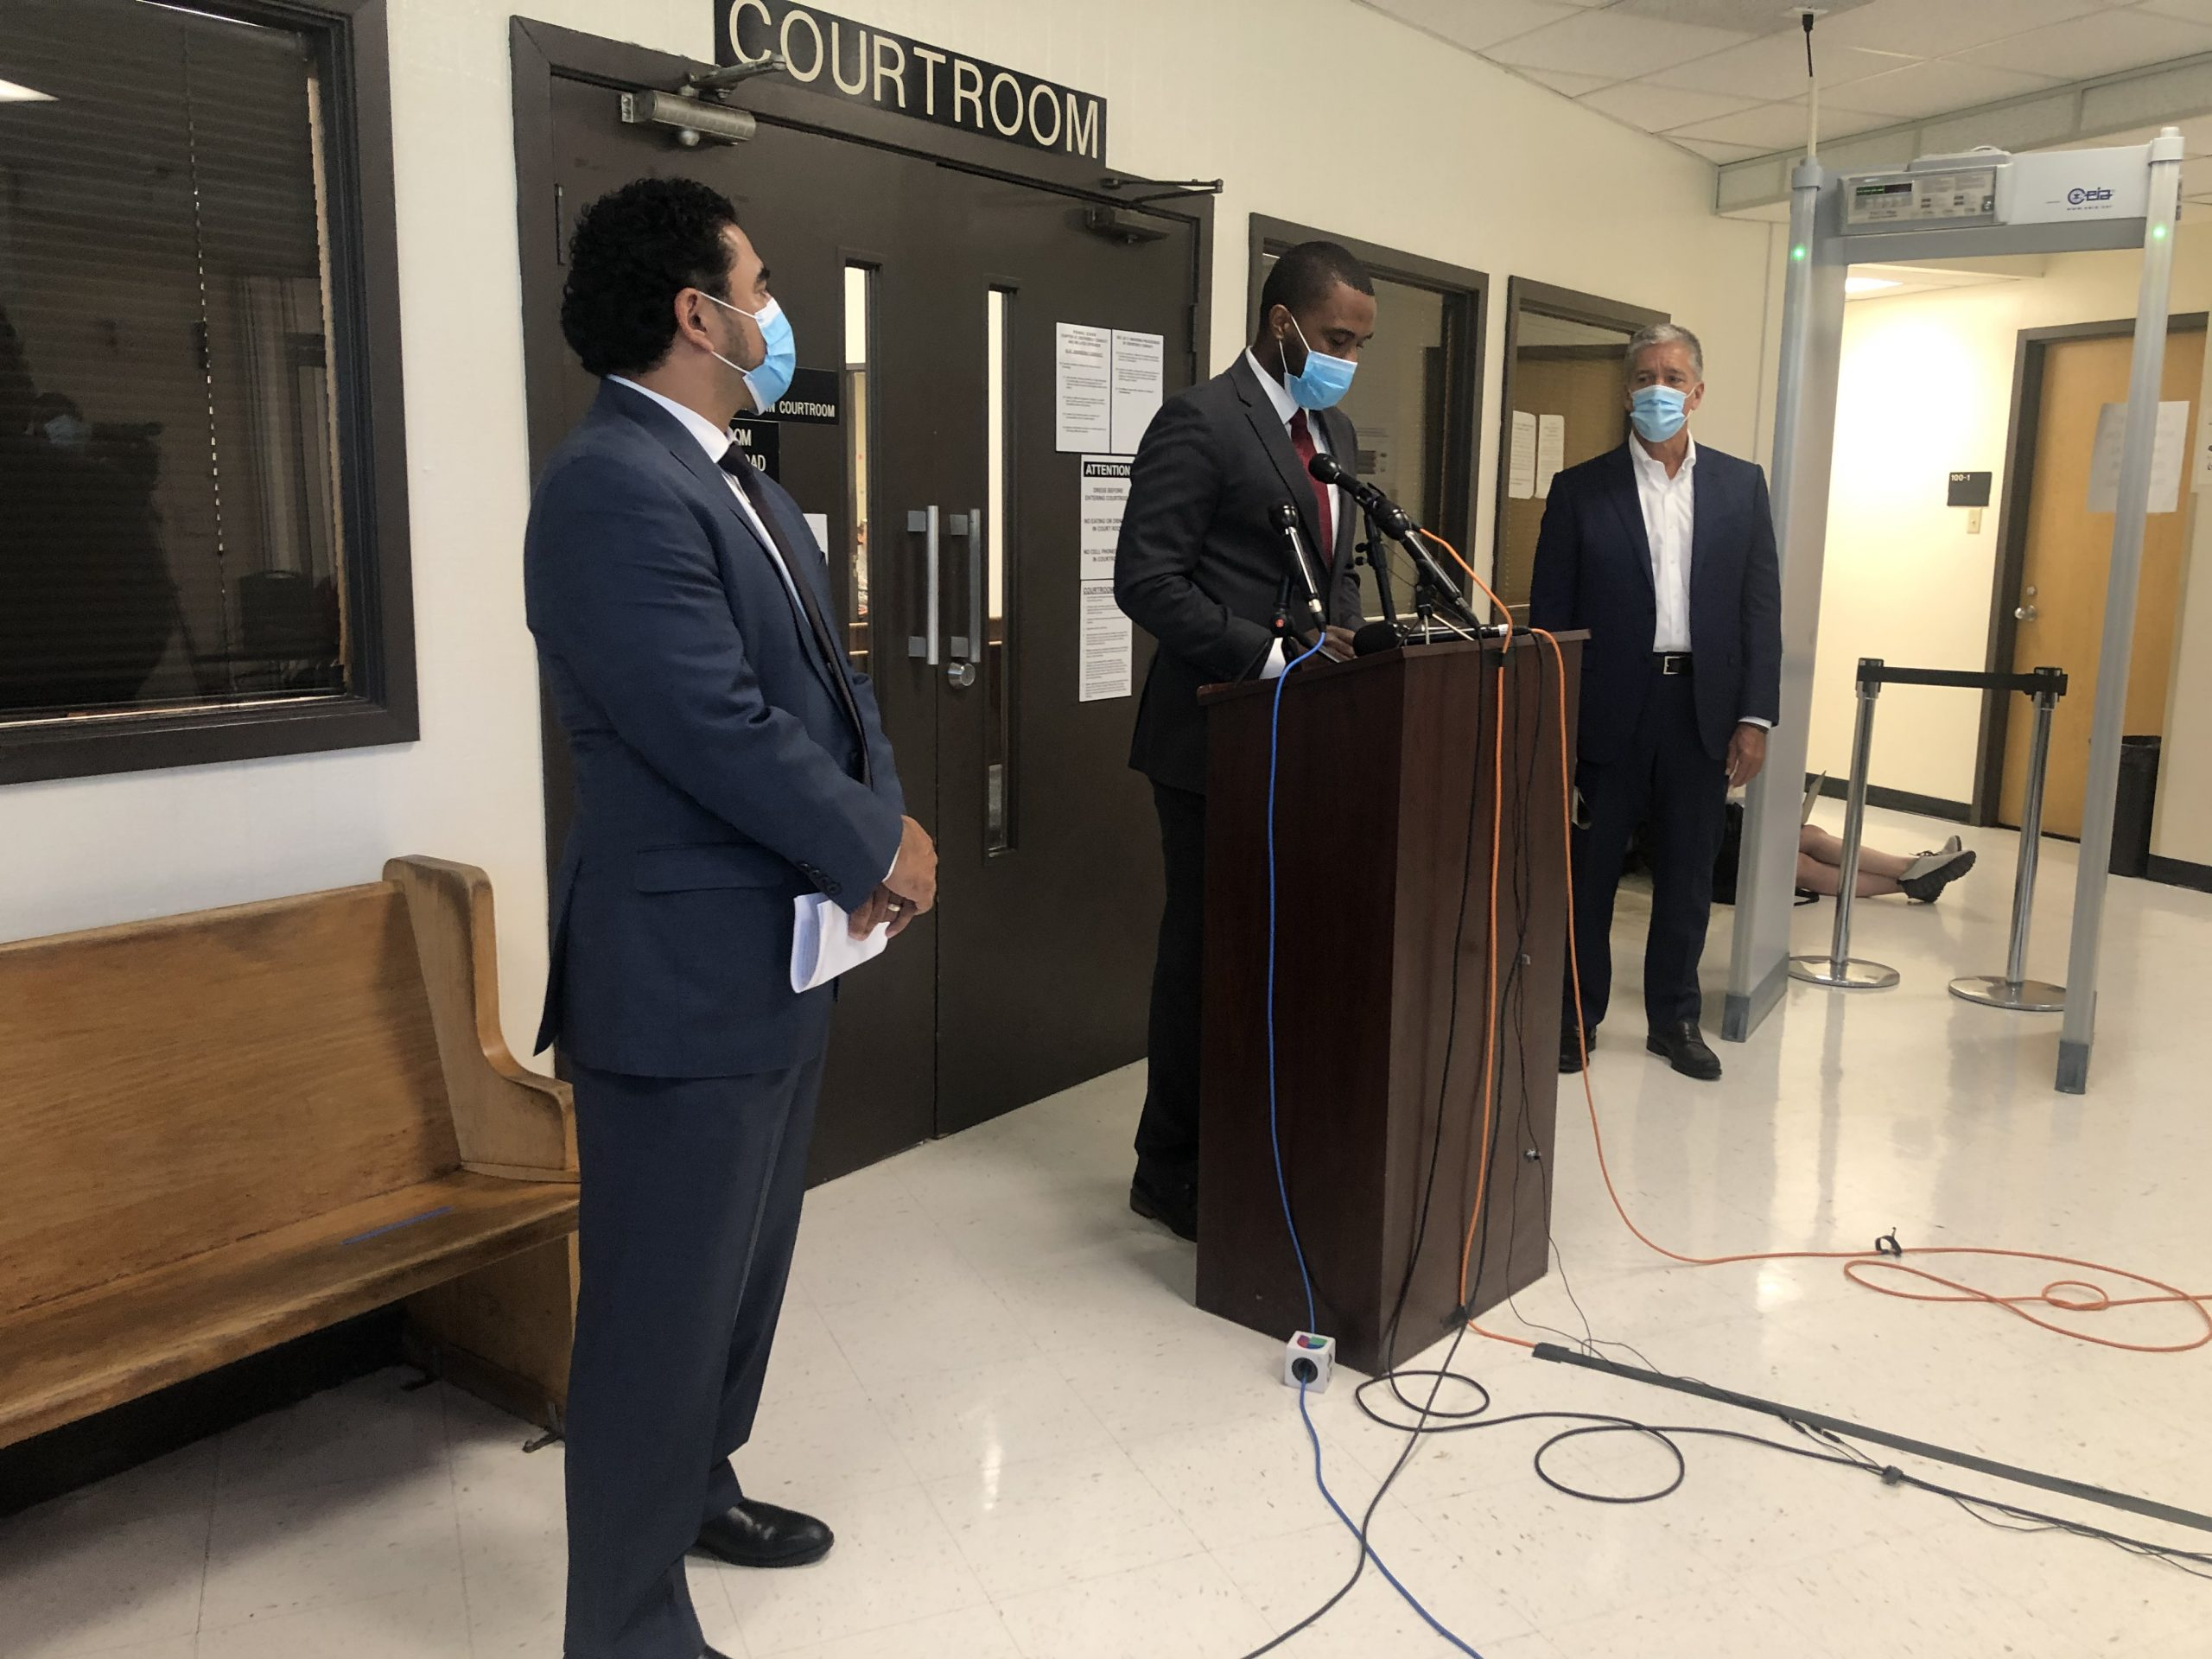 Harris County recovery czar Armando Walle, Judge Jeremy Brown, and Houston recovery czar Marvin Odum announced an eviction task force on June 11.